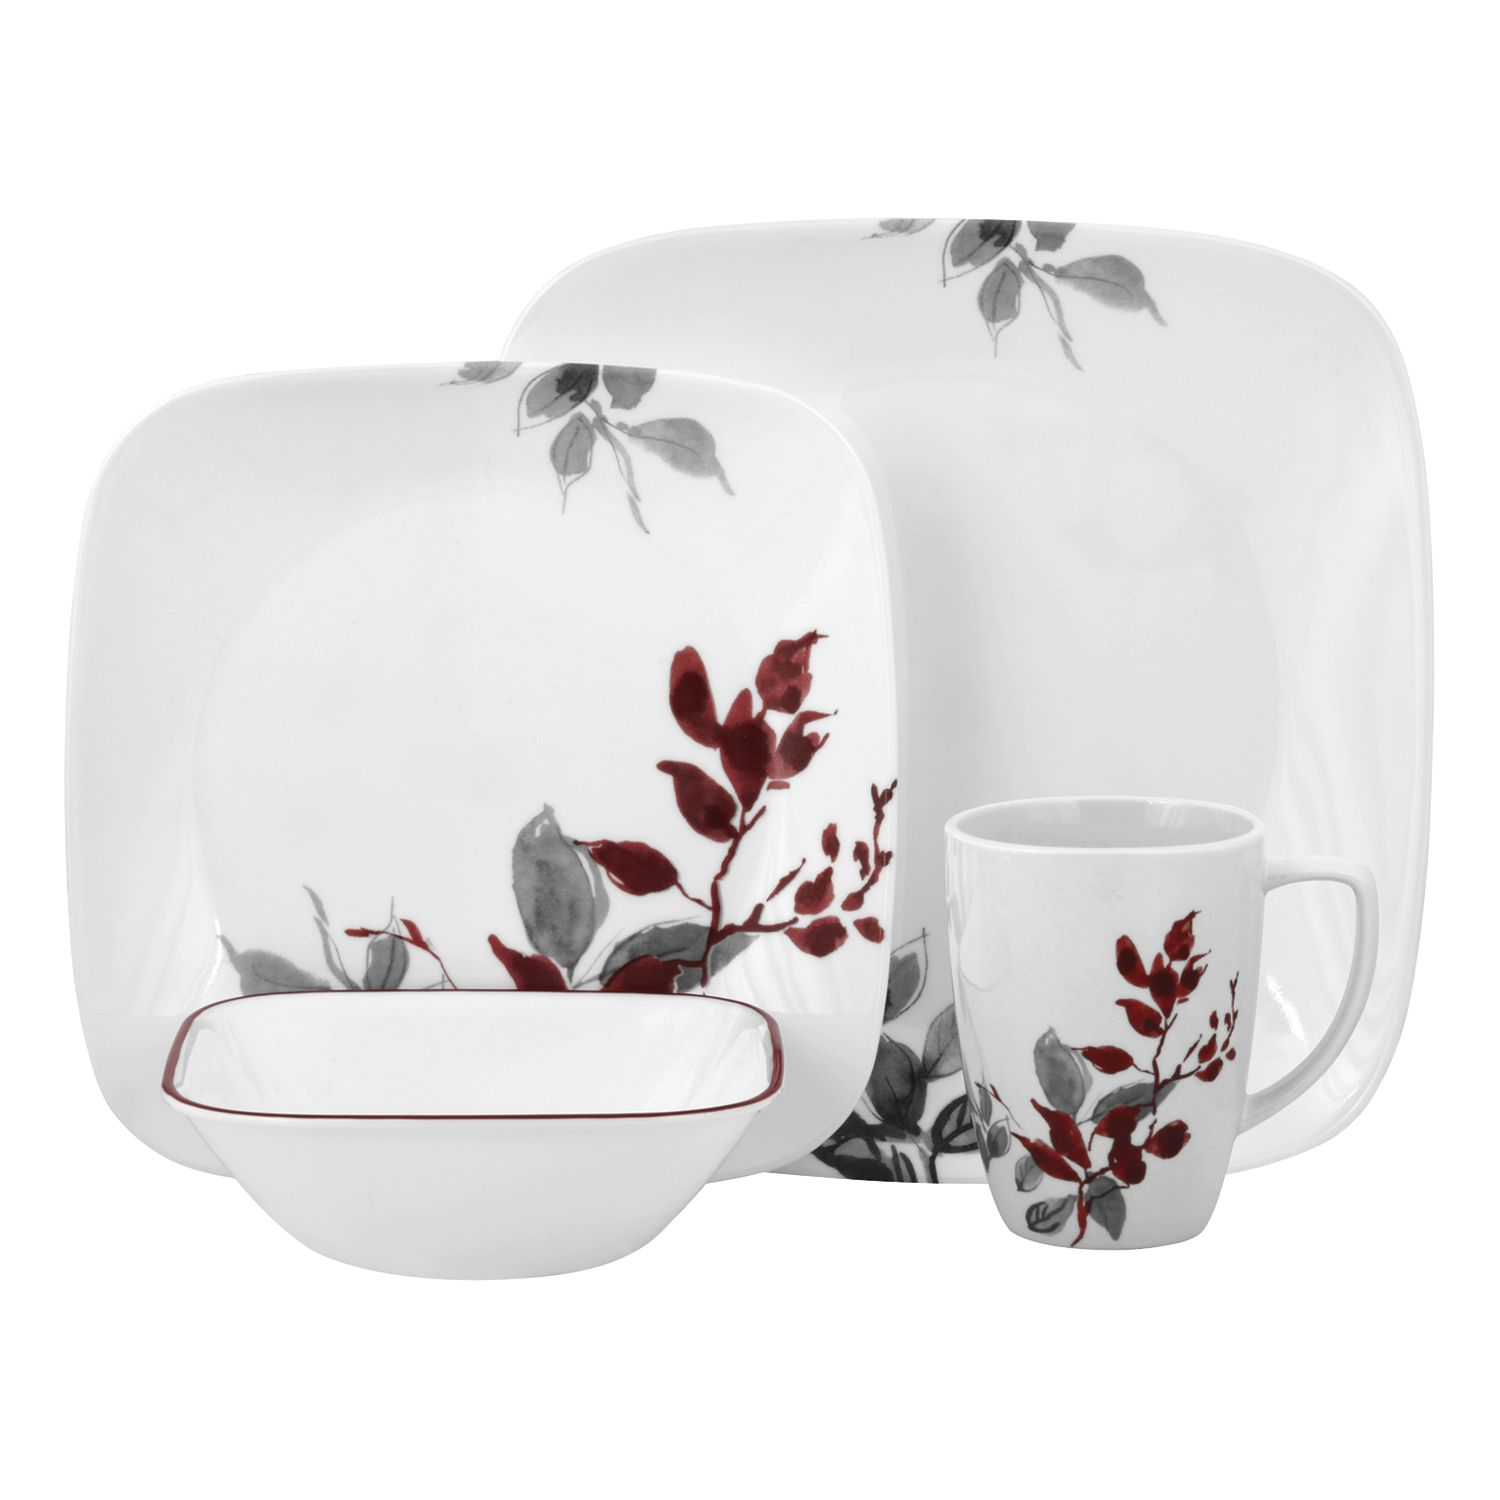 Corelle Lifestyles Kyoto Leaves Square 16-pc. Dinnerware Set  sc 1 st  Kohl\u0027s & Lifestyles Kyoto Leaves Square 16-pc. Dinnerware Set